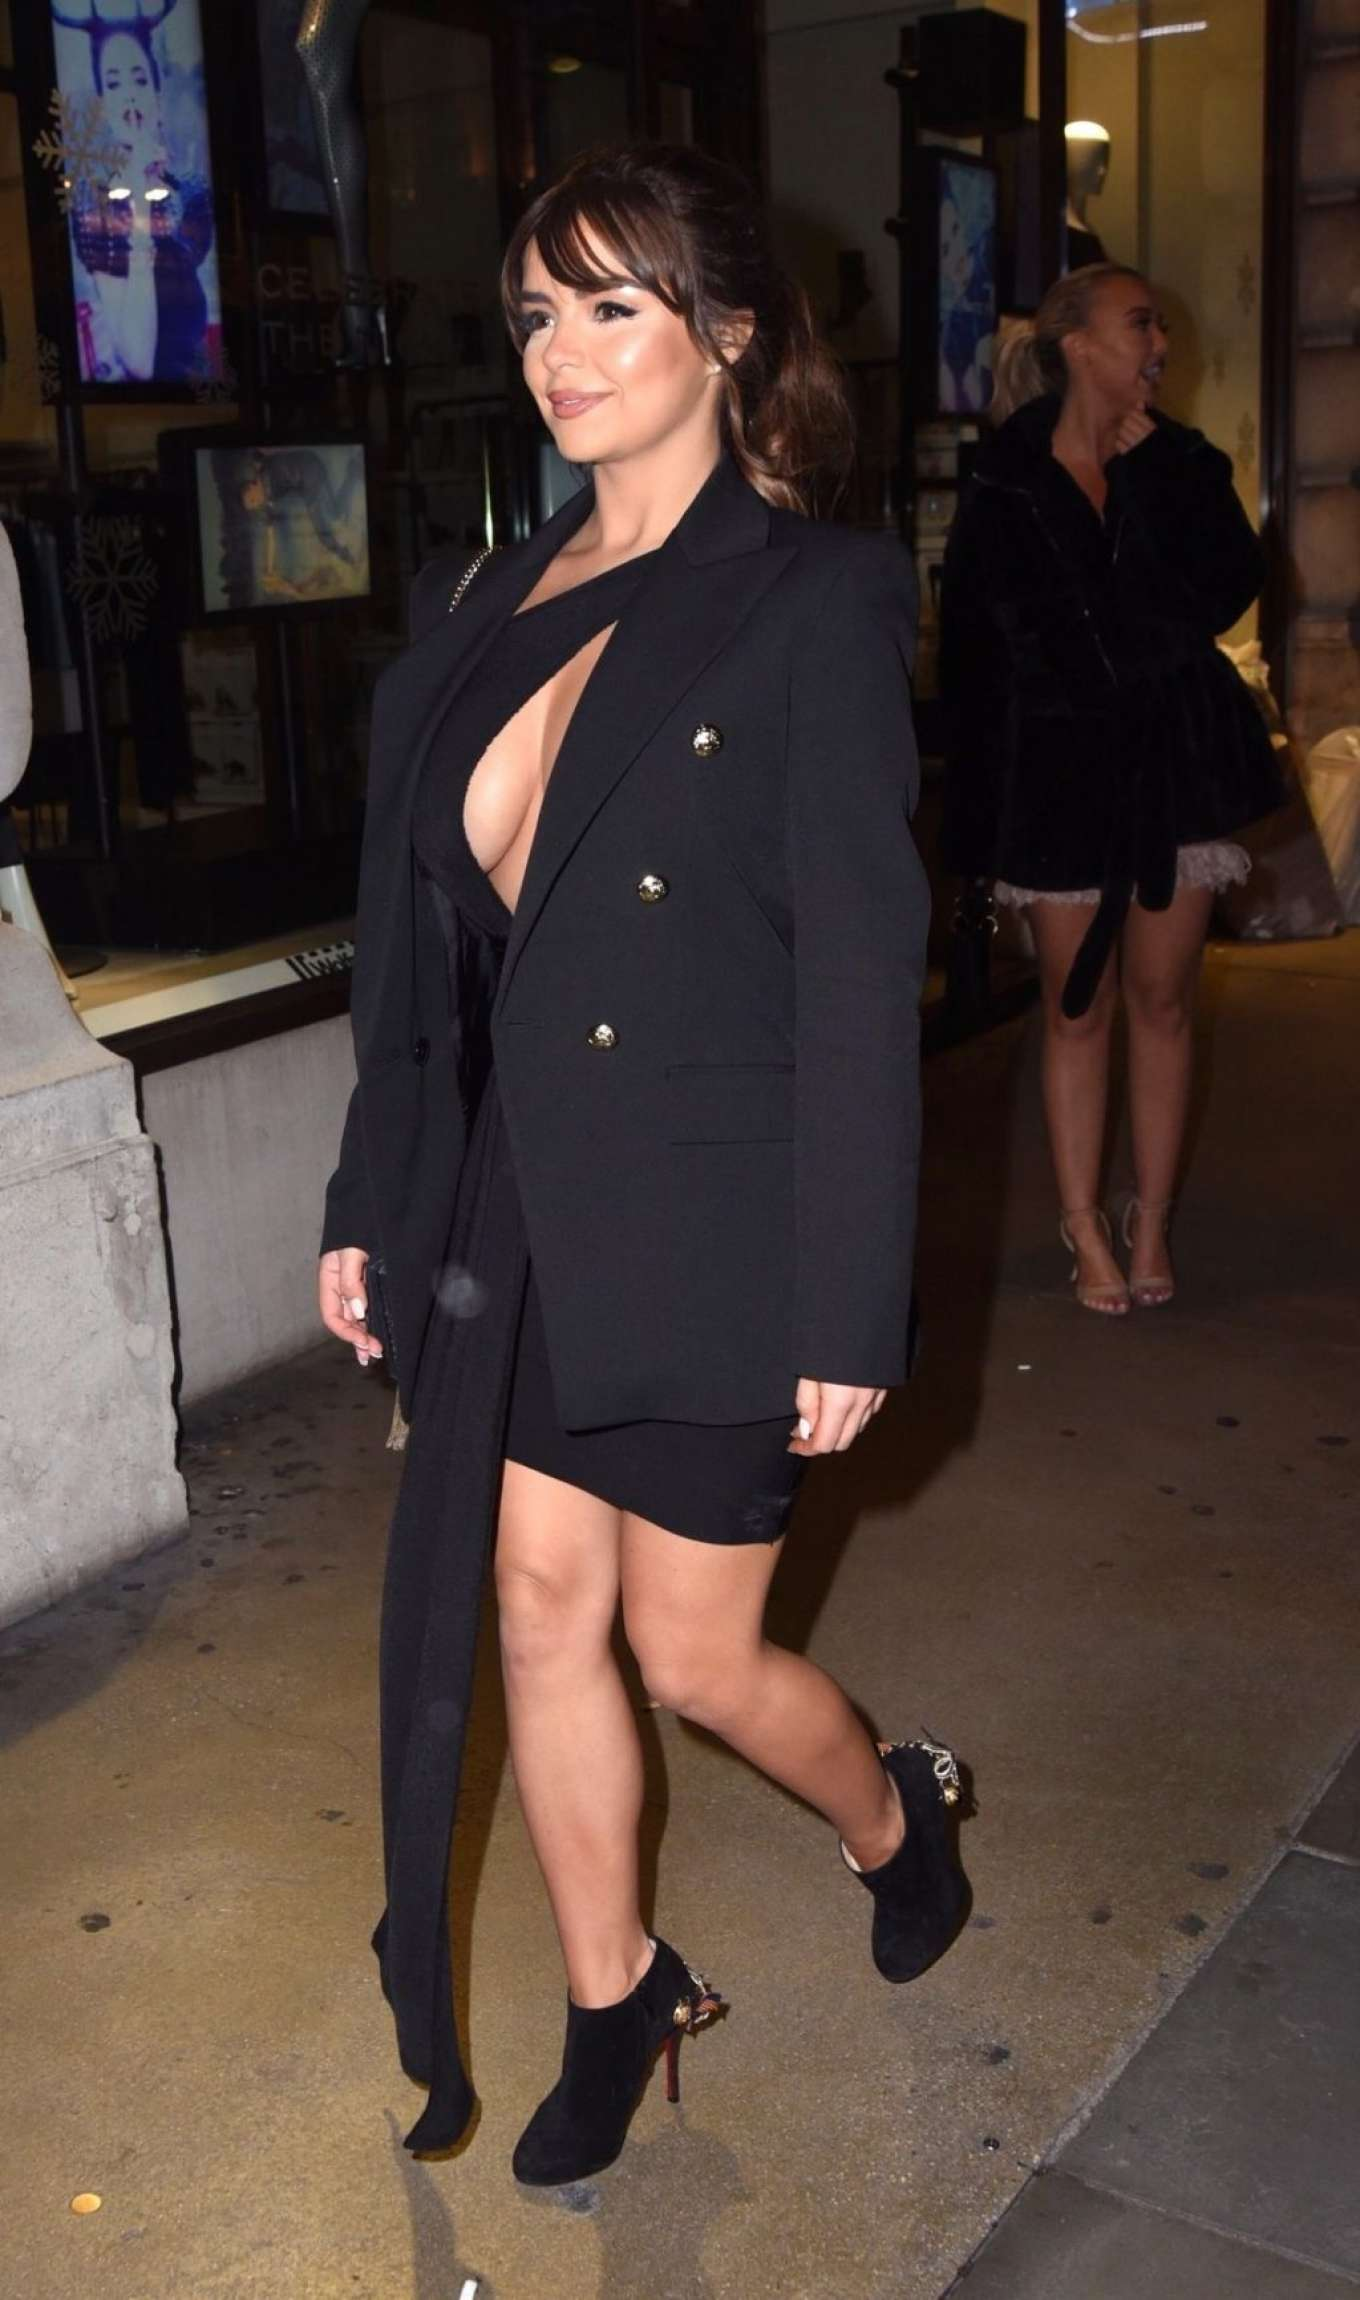 Demi Rose Mawby 2019 : Demi Rose Mawby was pictured while arriving at Cafe Royal in London-12